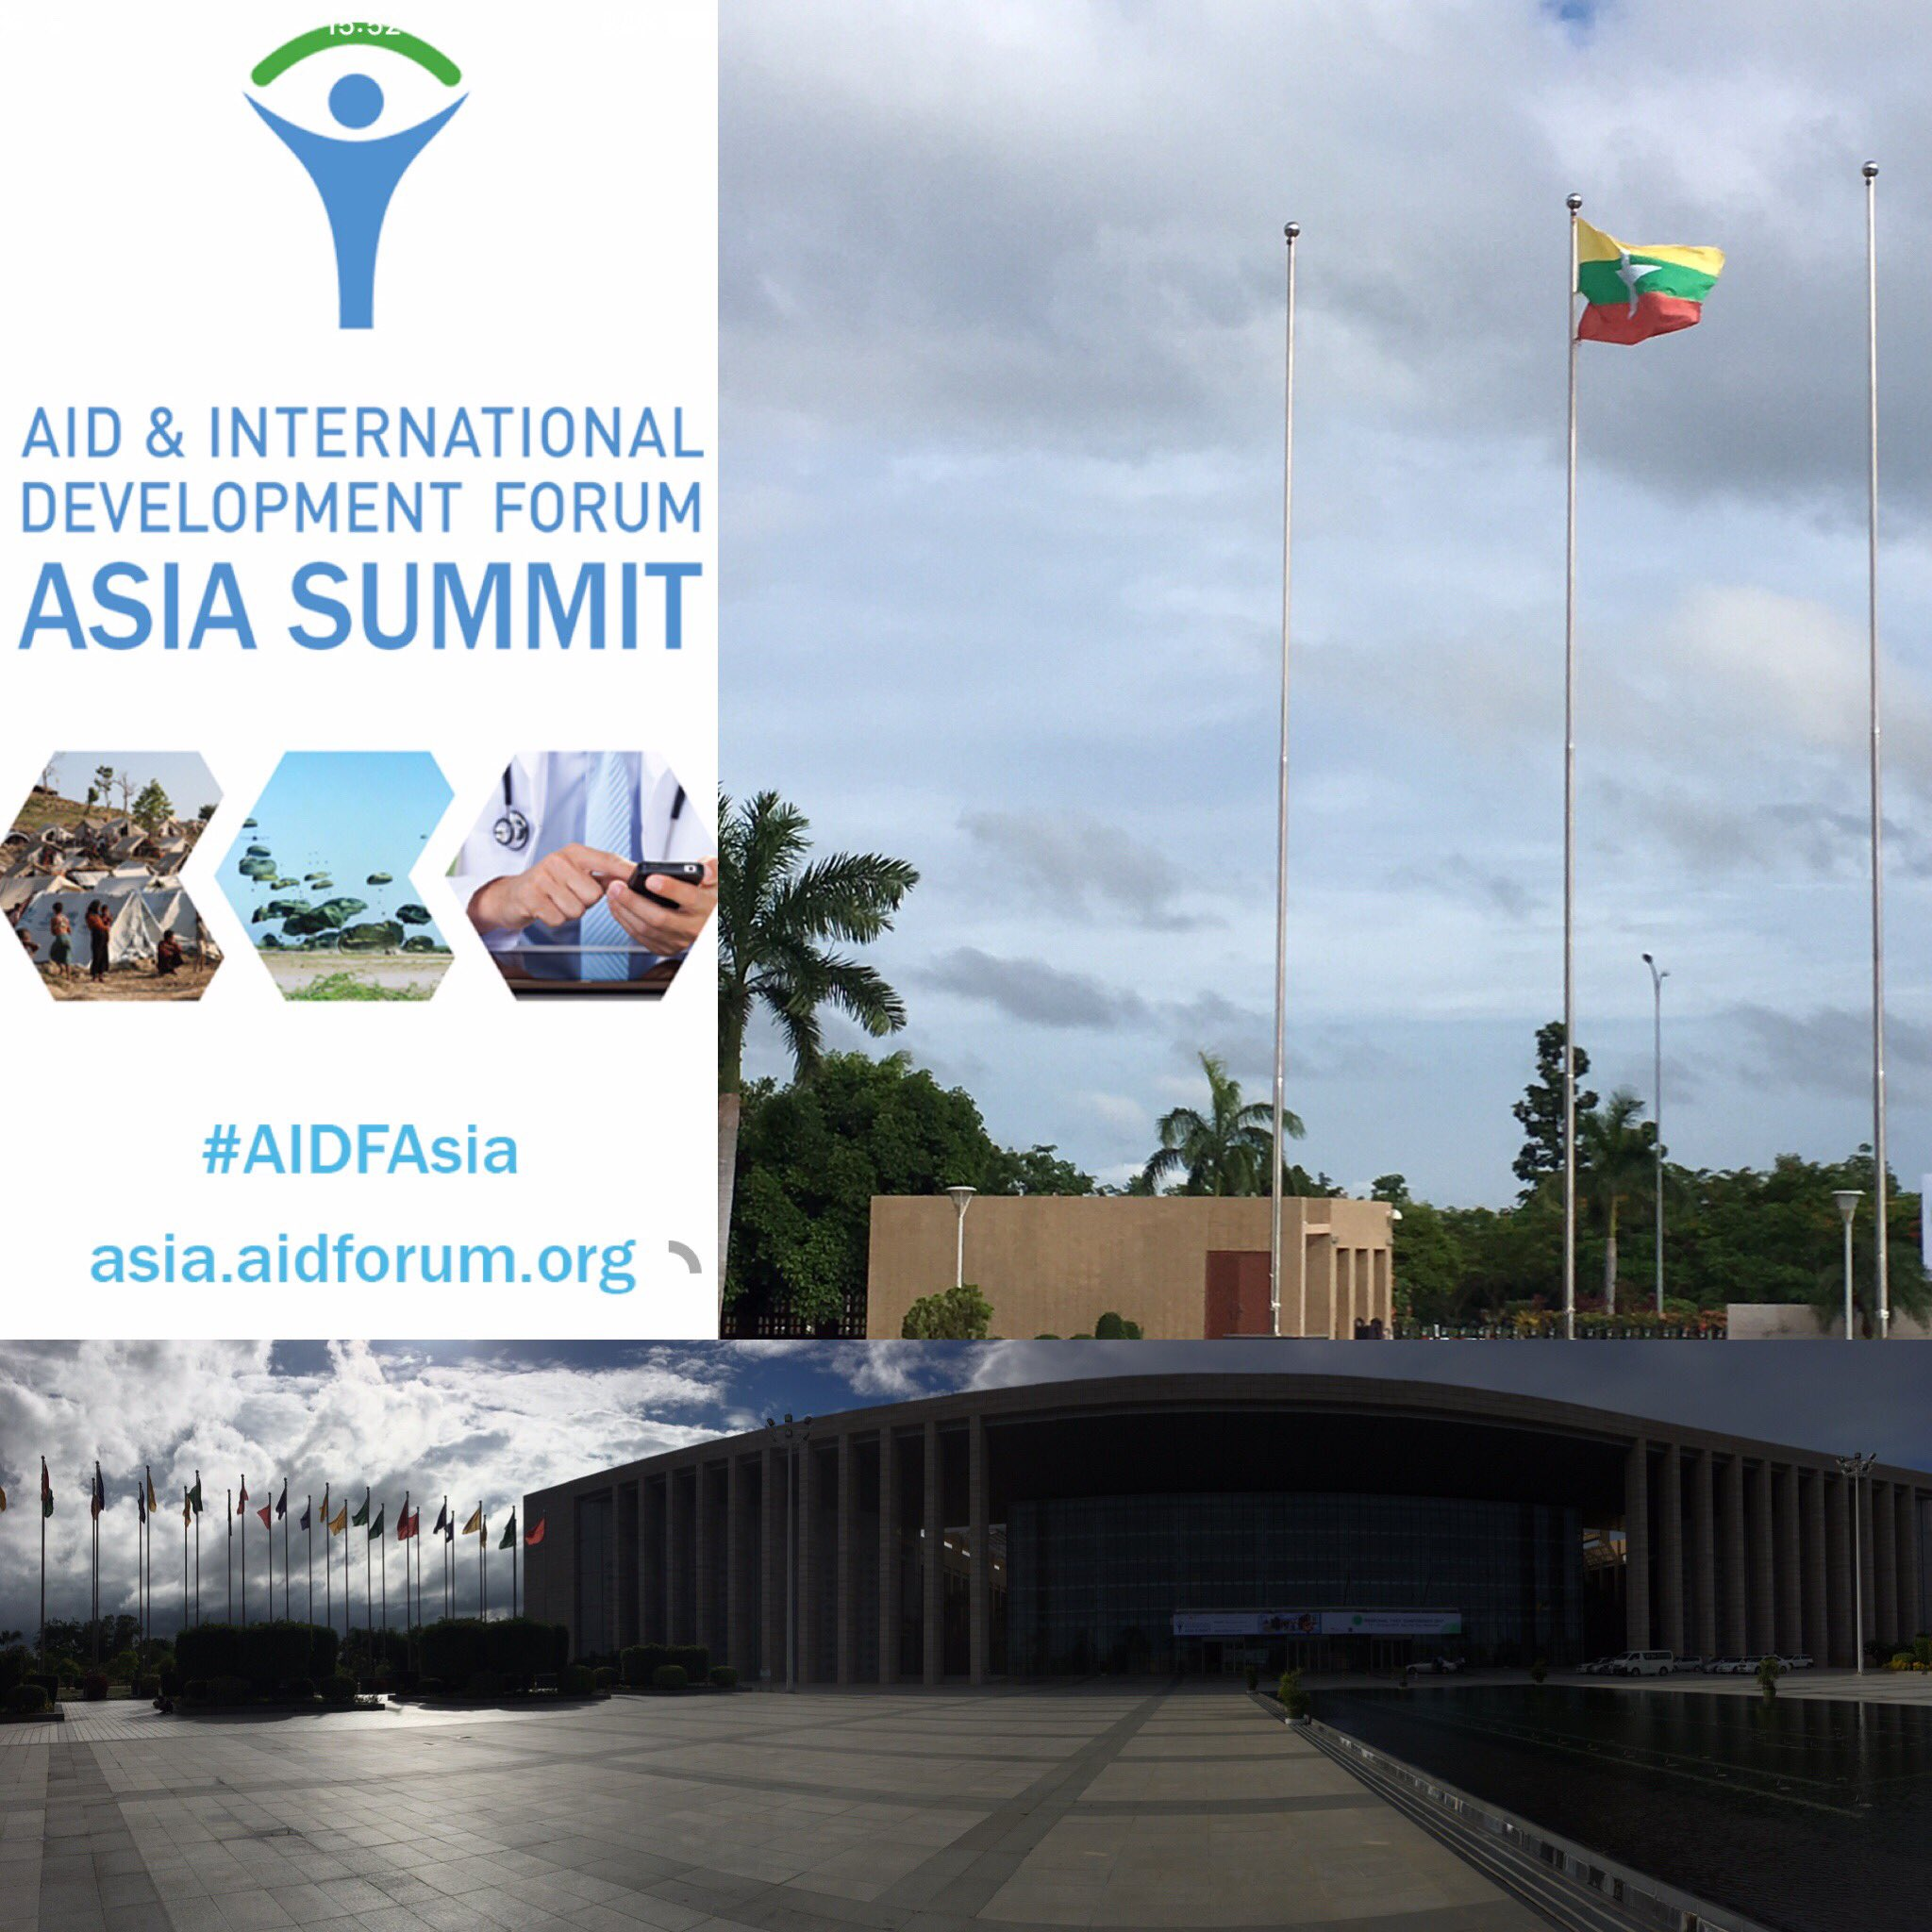 Had a great two days here in Myanmar at the @FollowAIDF Asia Summit #AIDFAsia https://t.co/zTJk7fHURu